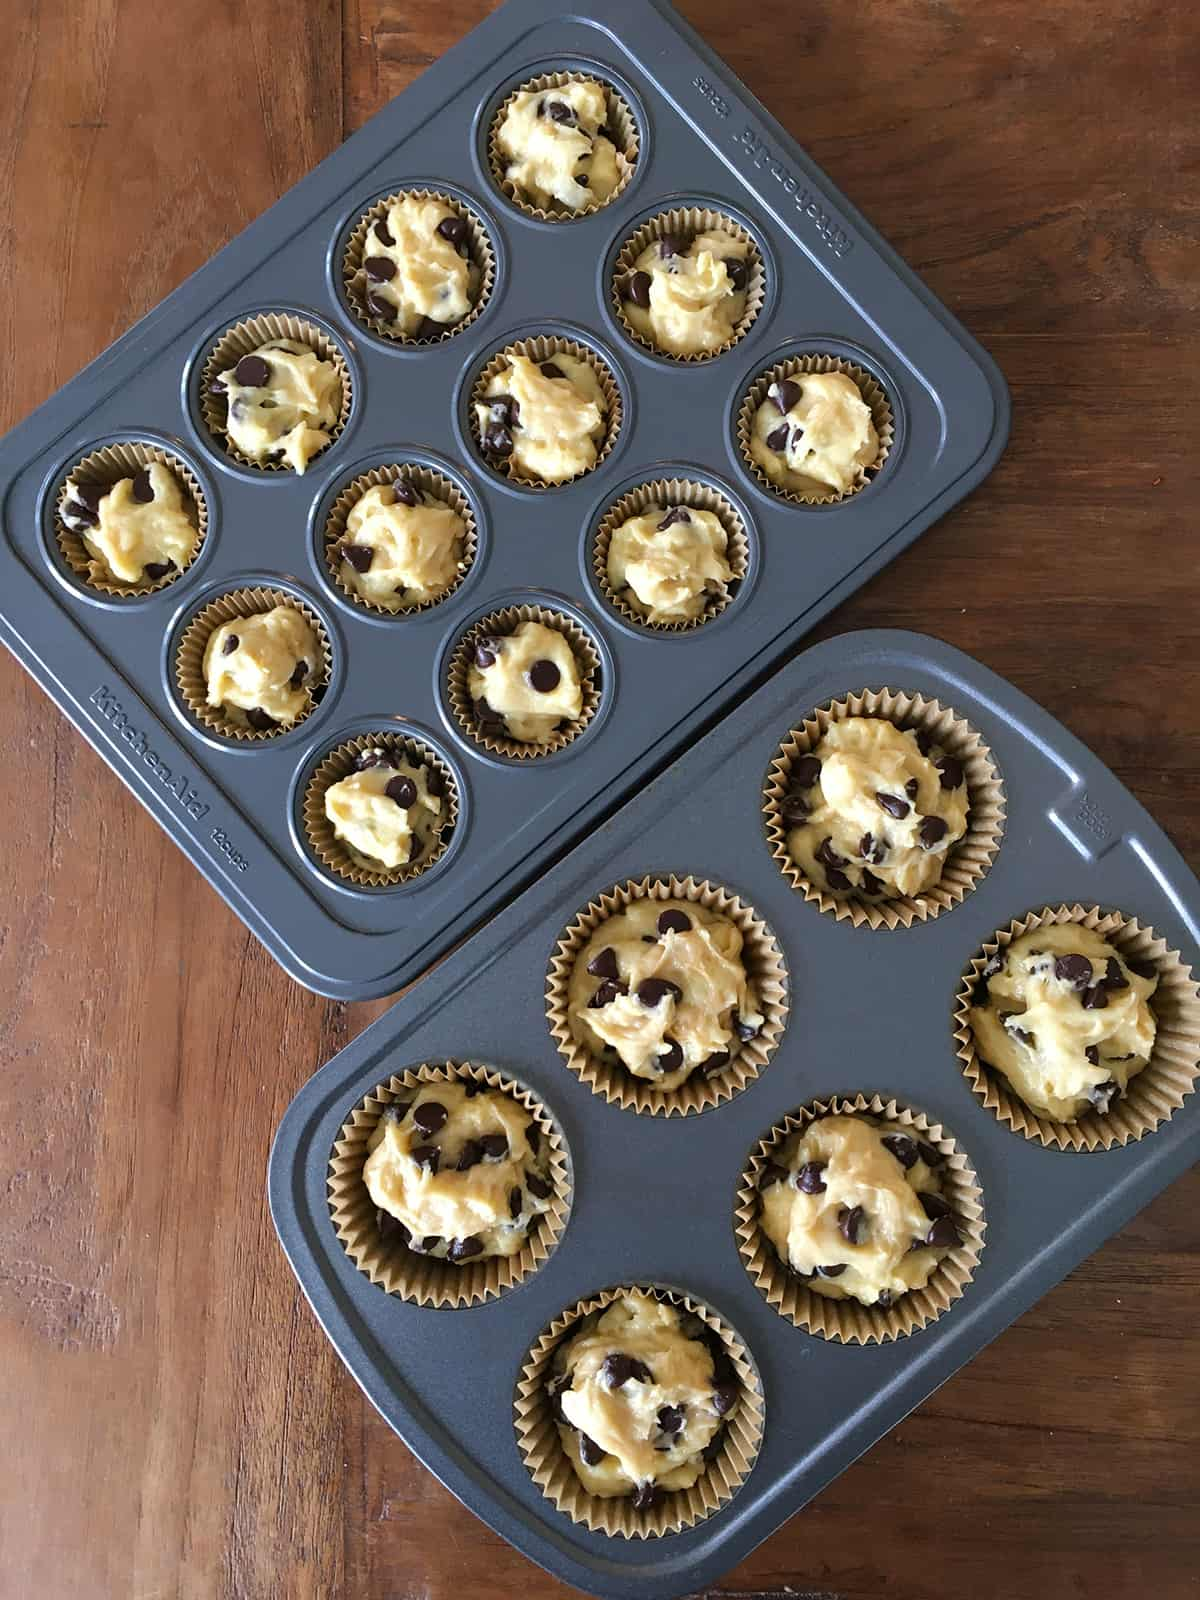 Mini and regular muffin tins, lined and filled with chocolate chip muffin batter